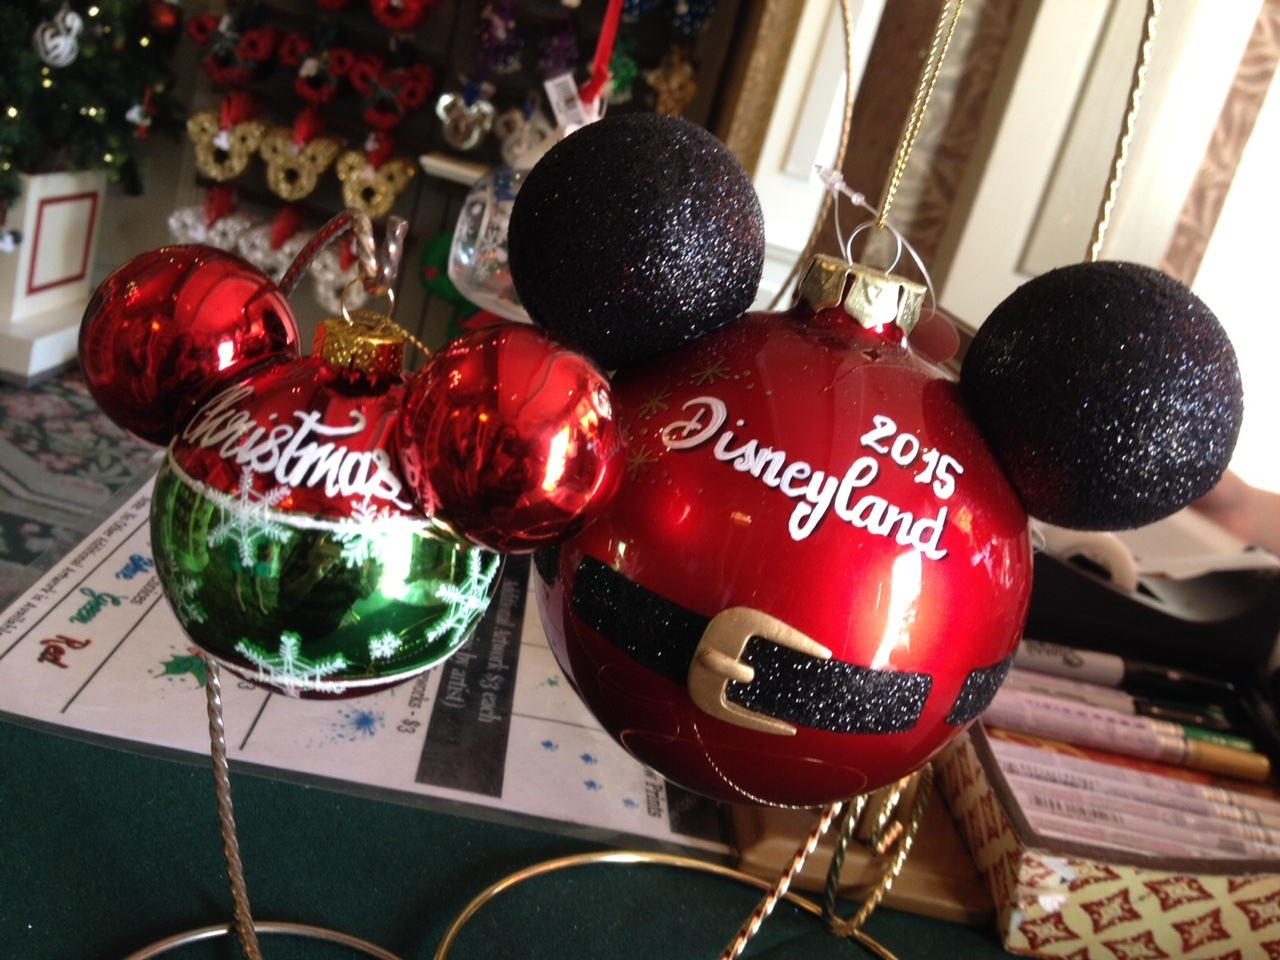 Mickey Mouse head shaped ornament